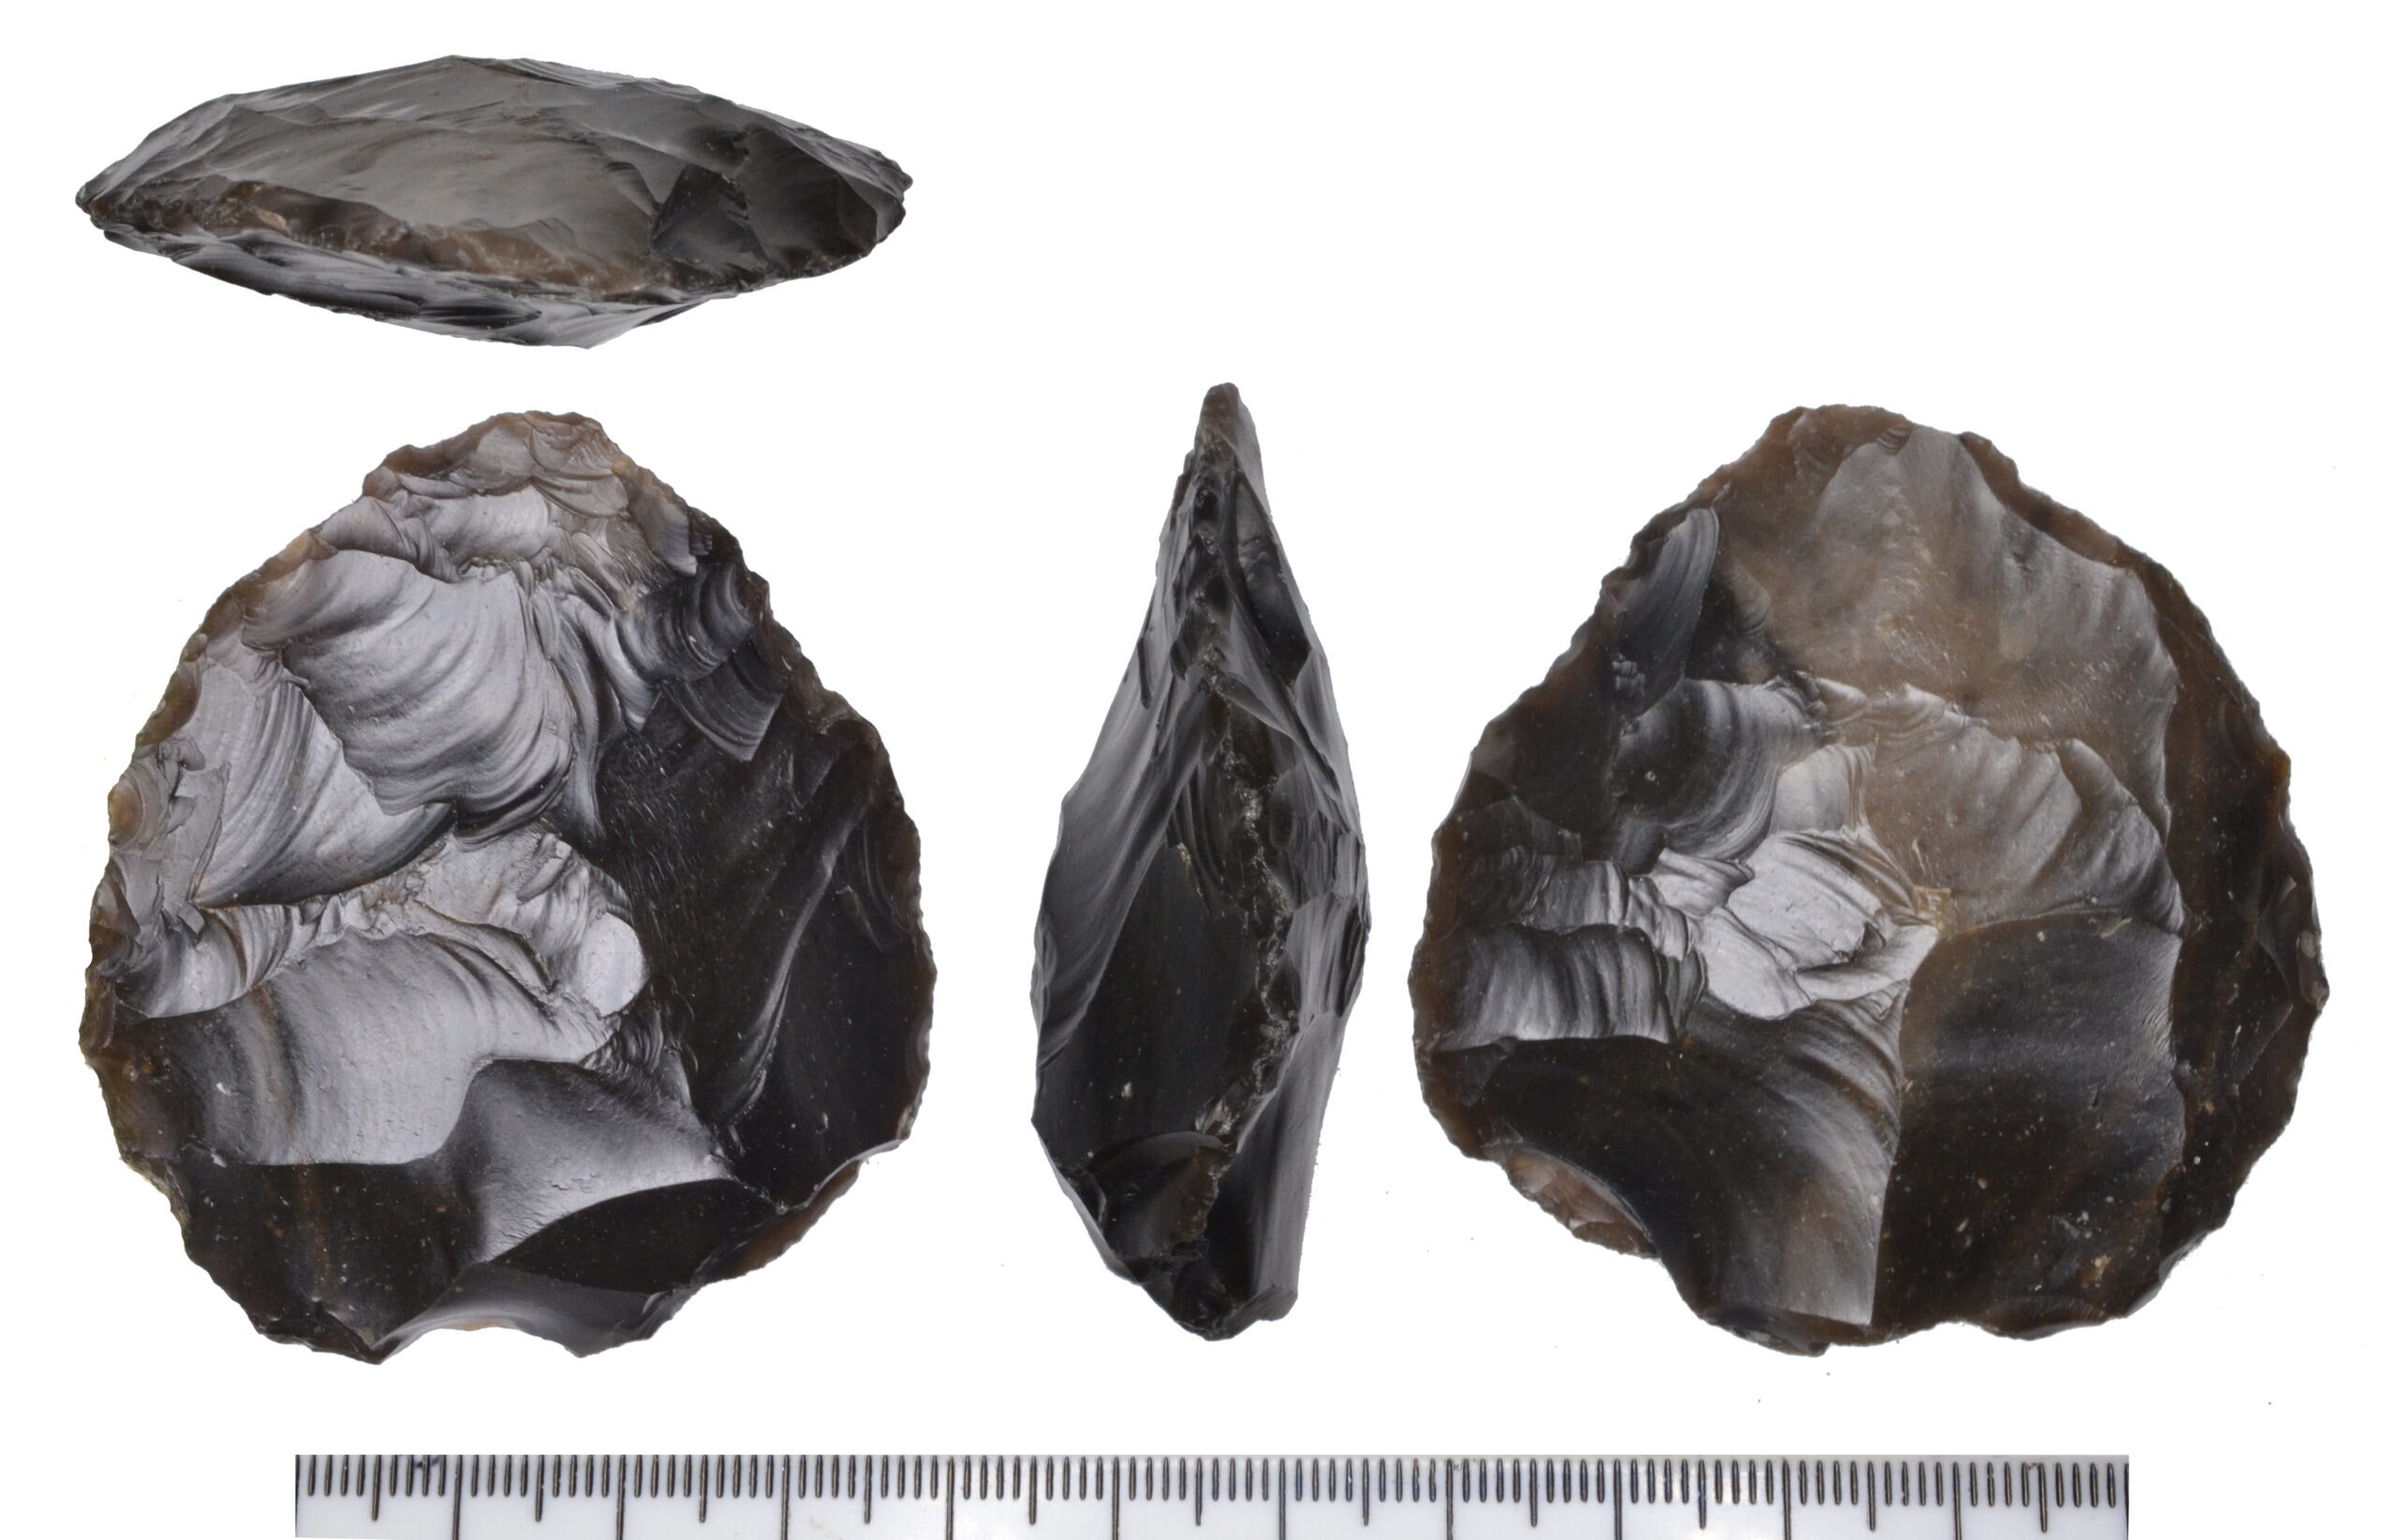 Palaeolithic handaxe from Happisburgh